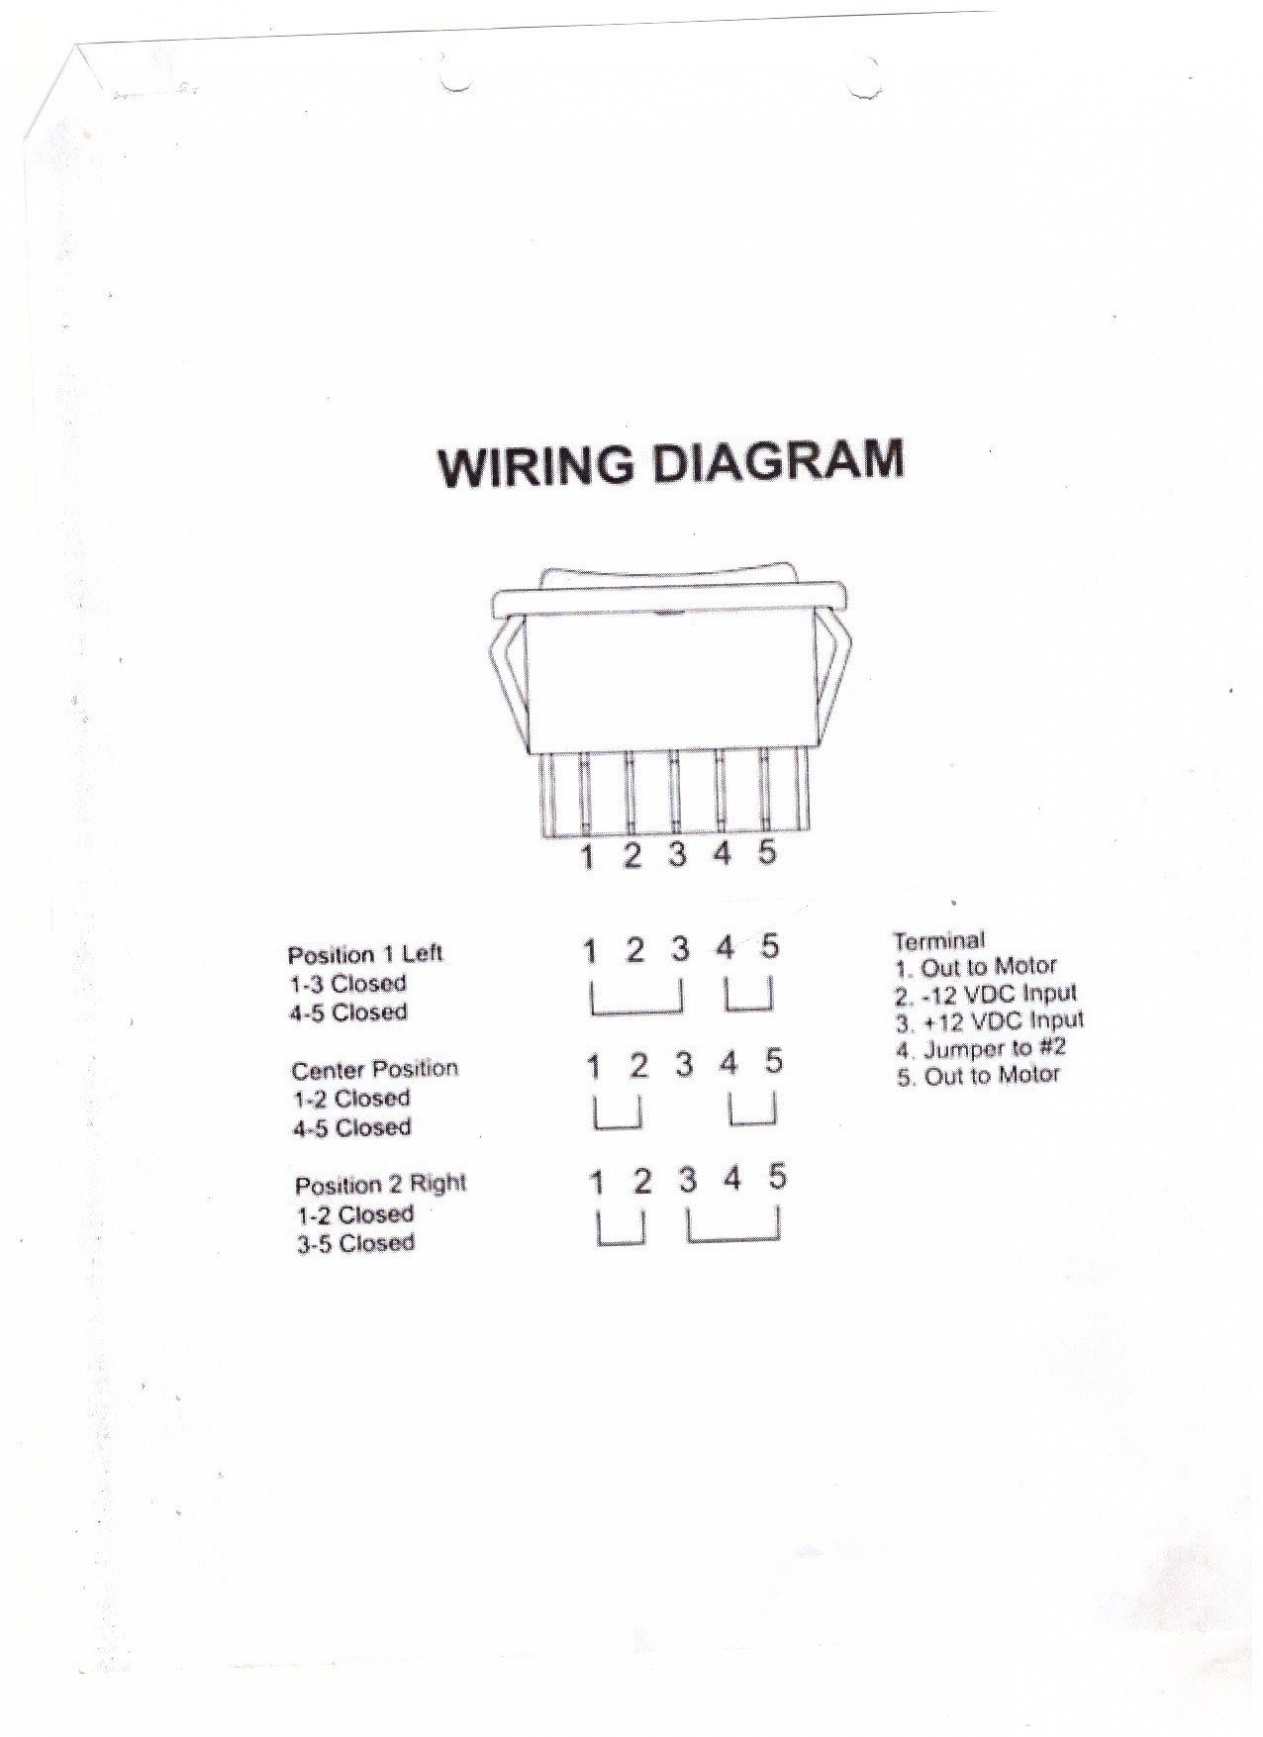 6 Pin Trailer Wiring Diagram – Unique 6 Pin Power Window Switch - Trailer Wiring Diagram 6 Pin